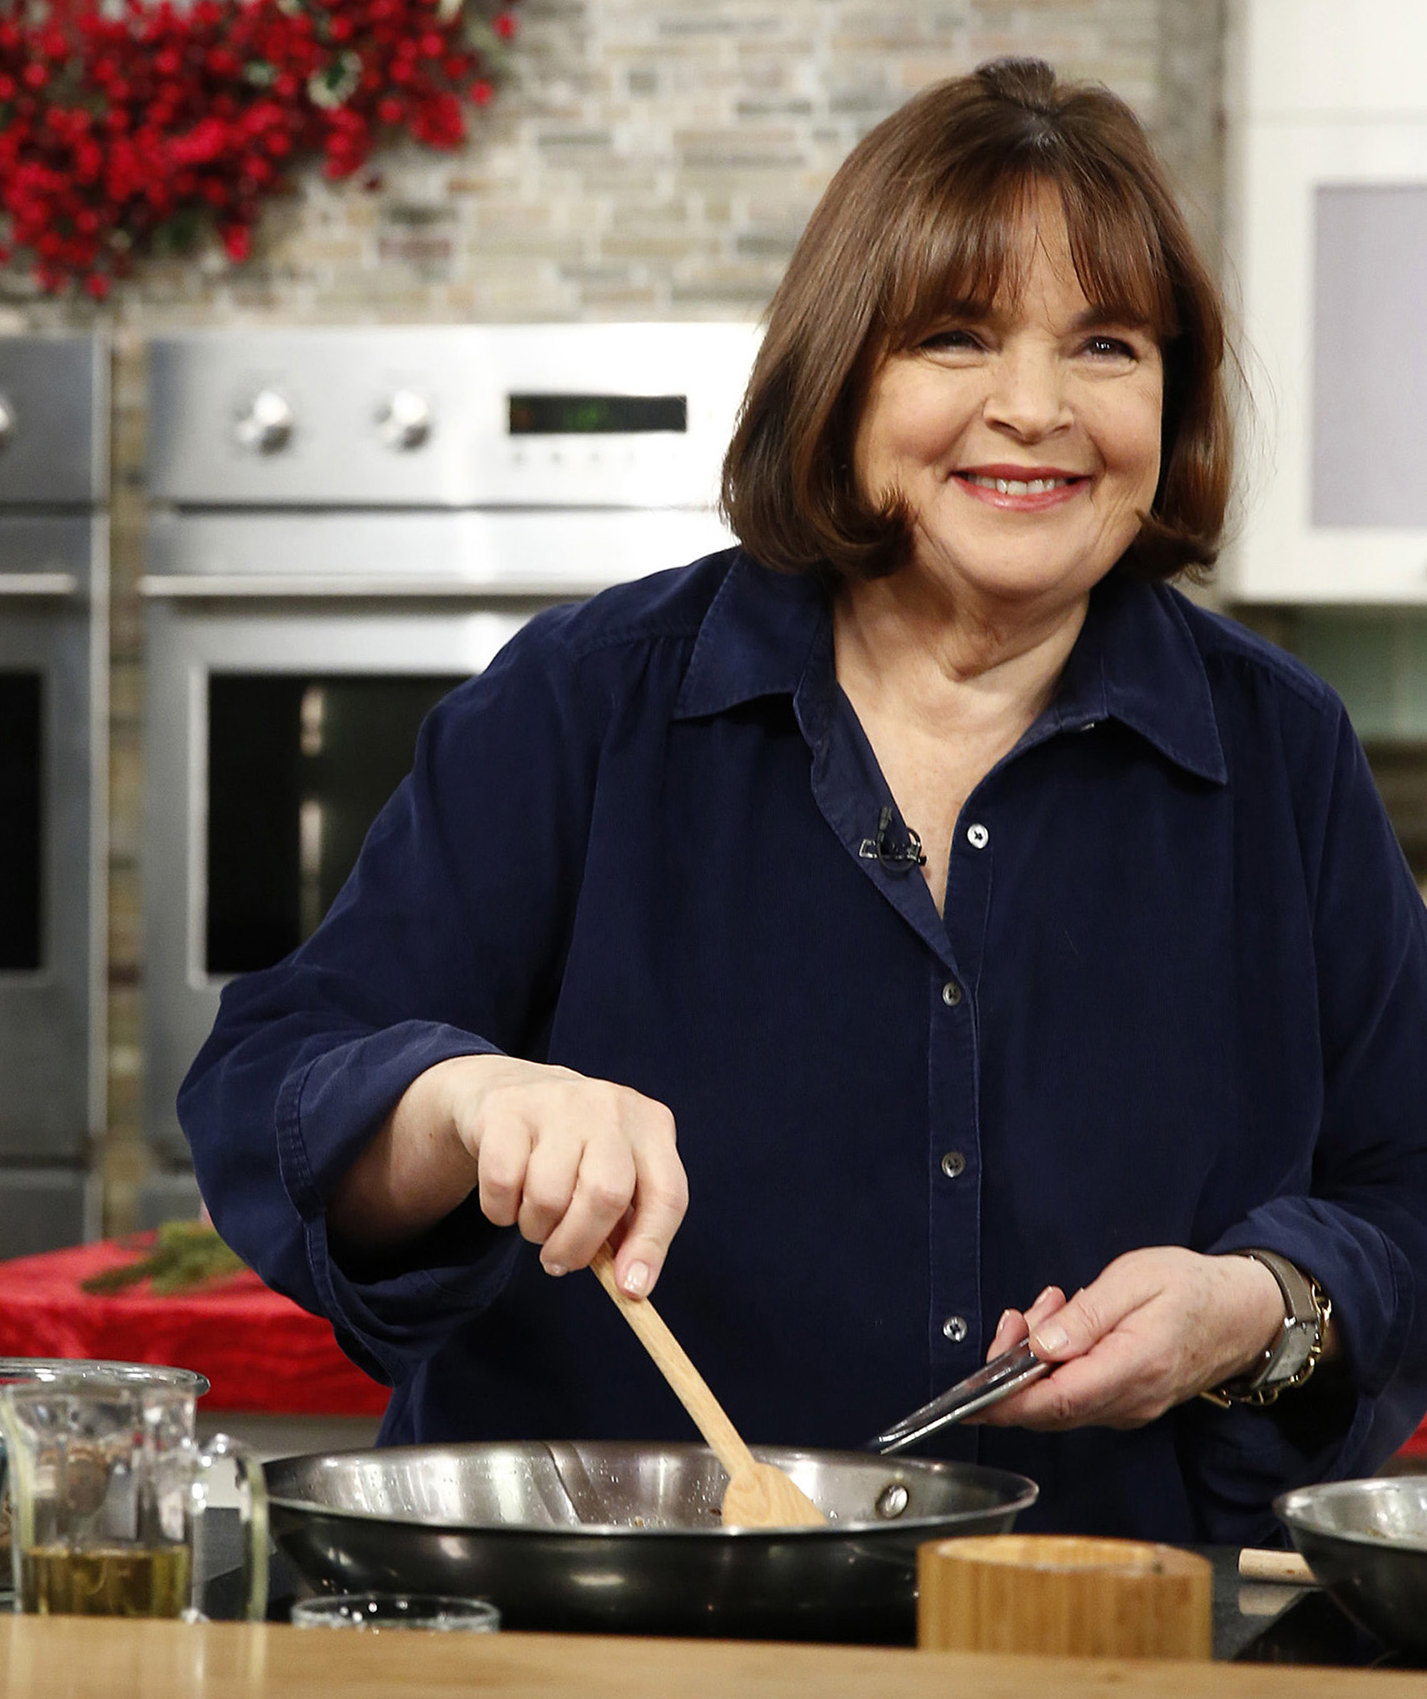 This Is the Dessert Ina Garten Eats Every Night